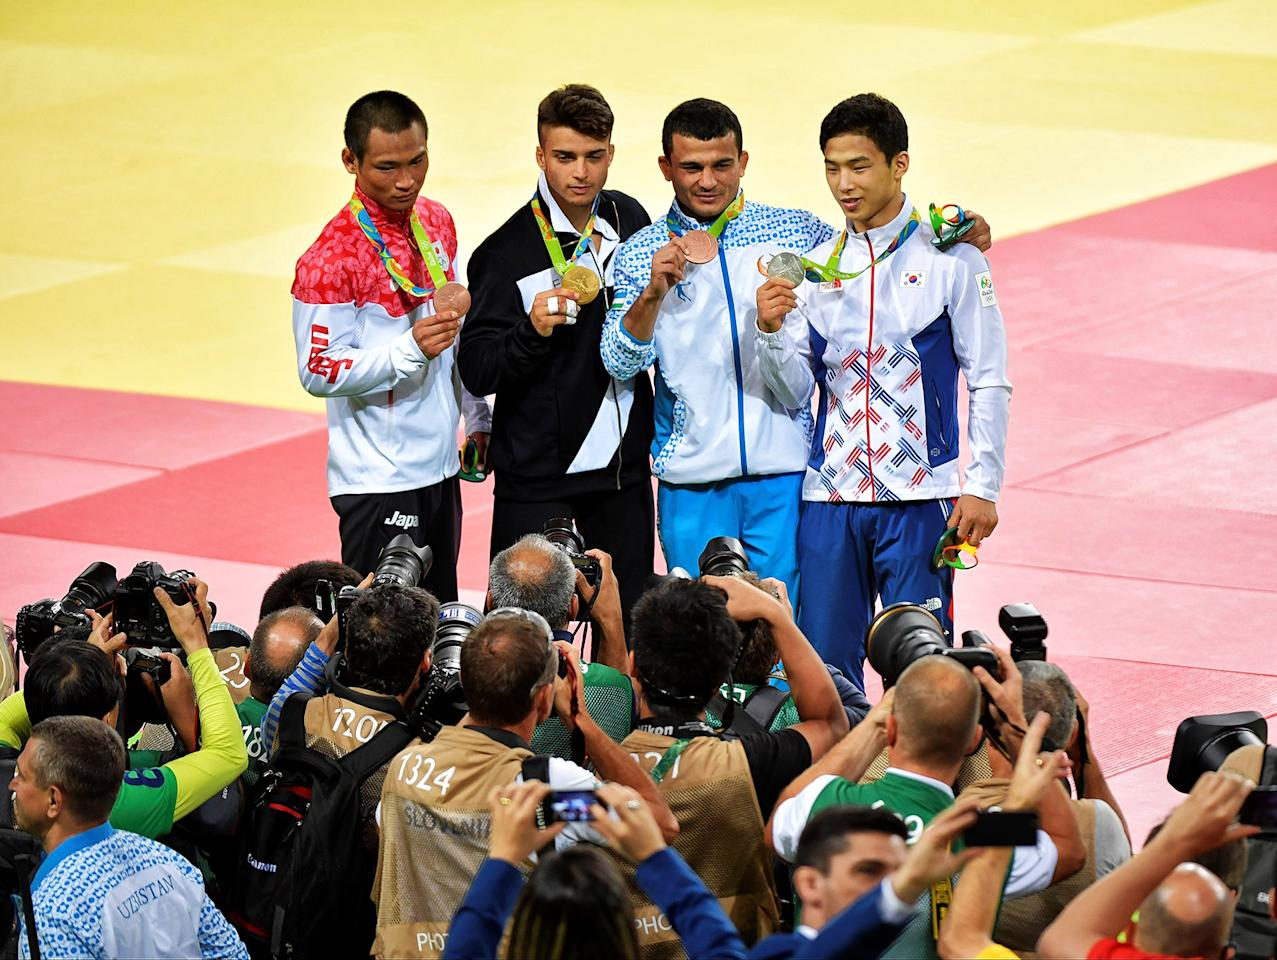 <p>Under 66kg medallists L-R: Bronze; Masashi Ebinuma of Japan, Gold; Fabio Basile of Italy, Bronze; Rishod Sobirov of Uzbekistan and Silver; Ba-Ul An of South Korea pose in front of the photographers during the medal ceremony on day 2 of the 2016 Rio Olympic Judo on Sunday, August 7 held at the Carloca Arenas, Barra, Rio de Janeiro, Brazil. (David Finch/Getty Images) </p>